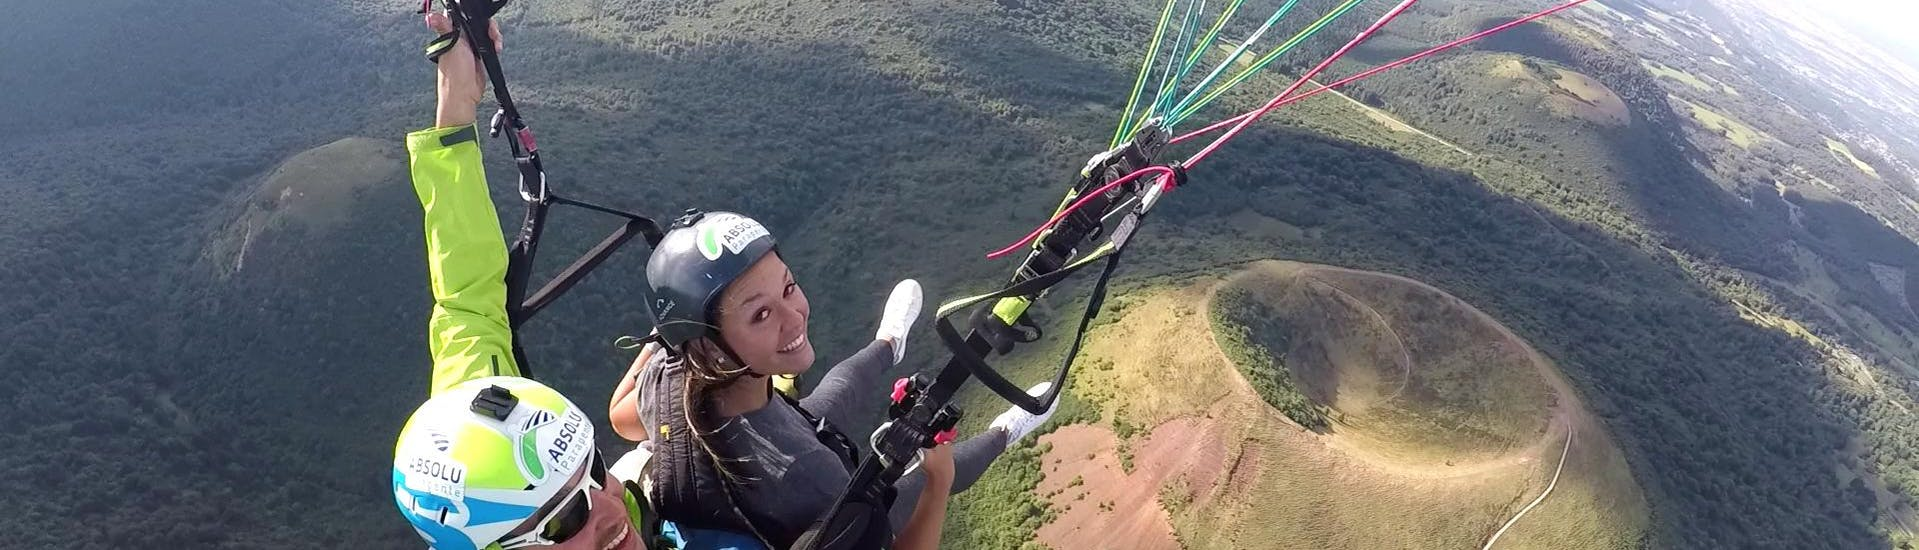 A paragliding enthusiast is happy to do a tandem paragliding flight with an experienced pilot from Absolu Parapente above the Puy de Dôme and the volcanoes of the Chaîne des Puys.